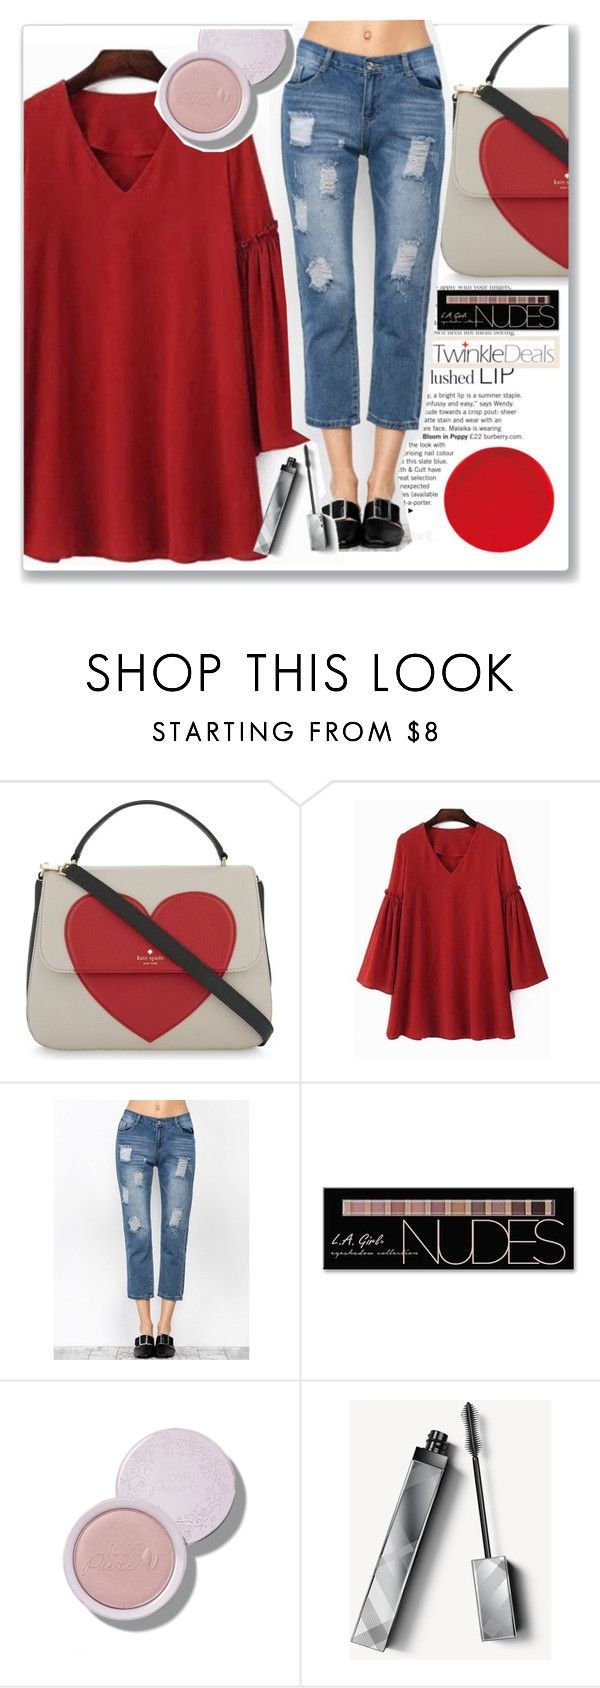 """""""TwinkleDeals"""" by k-lole ❤ liked on Polyvore featuring Kate Spade, Charlotte Russe, Burberry, love, red, denim and twinkledeals"""